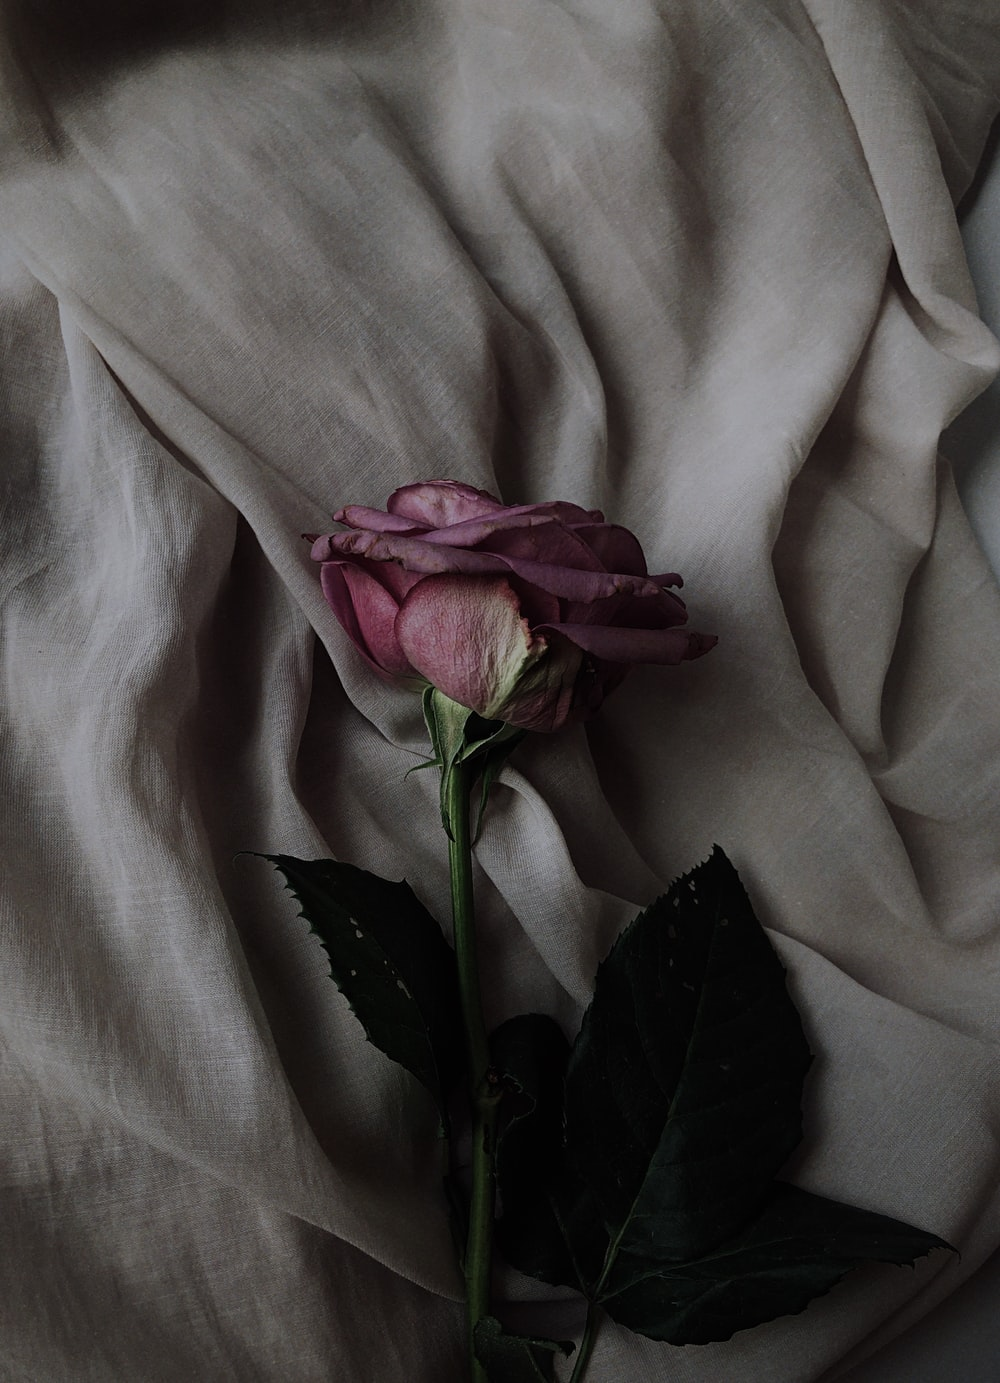 pink rose flower on gray textile